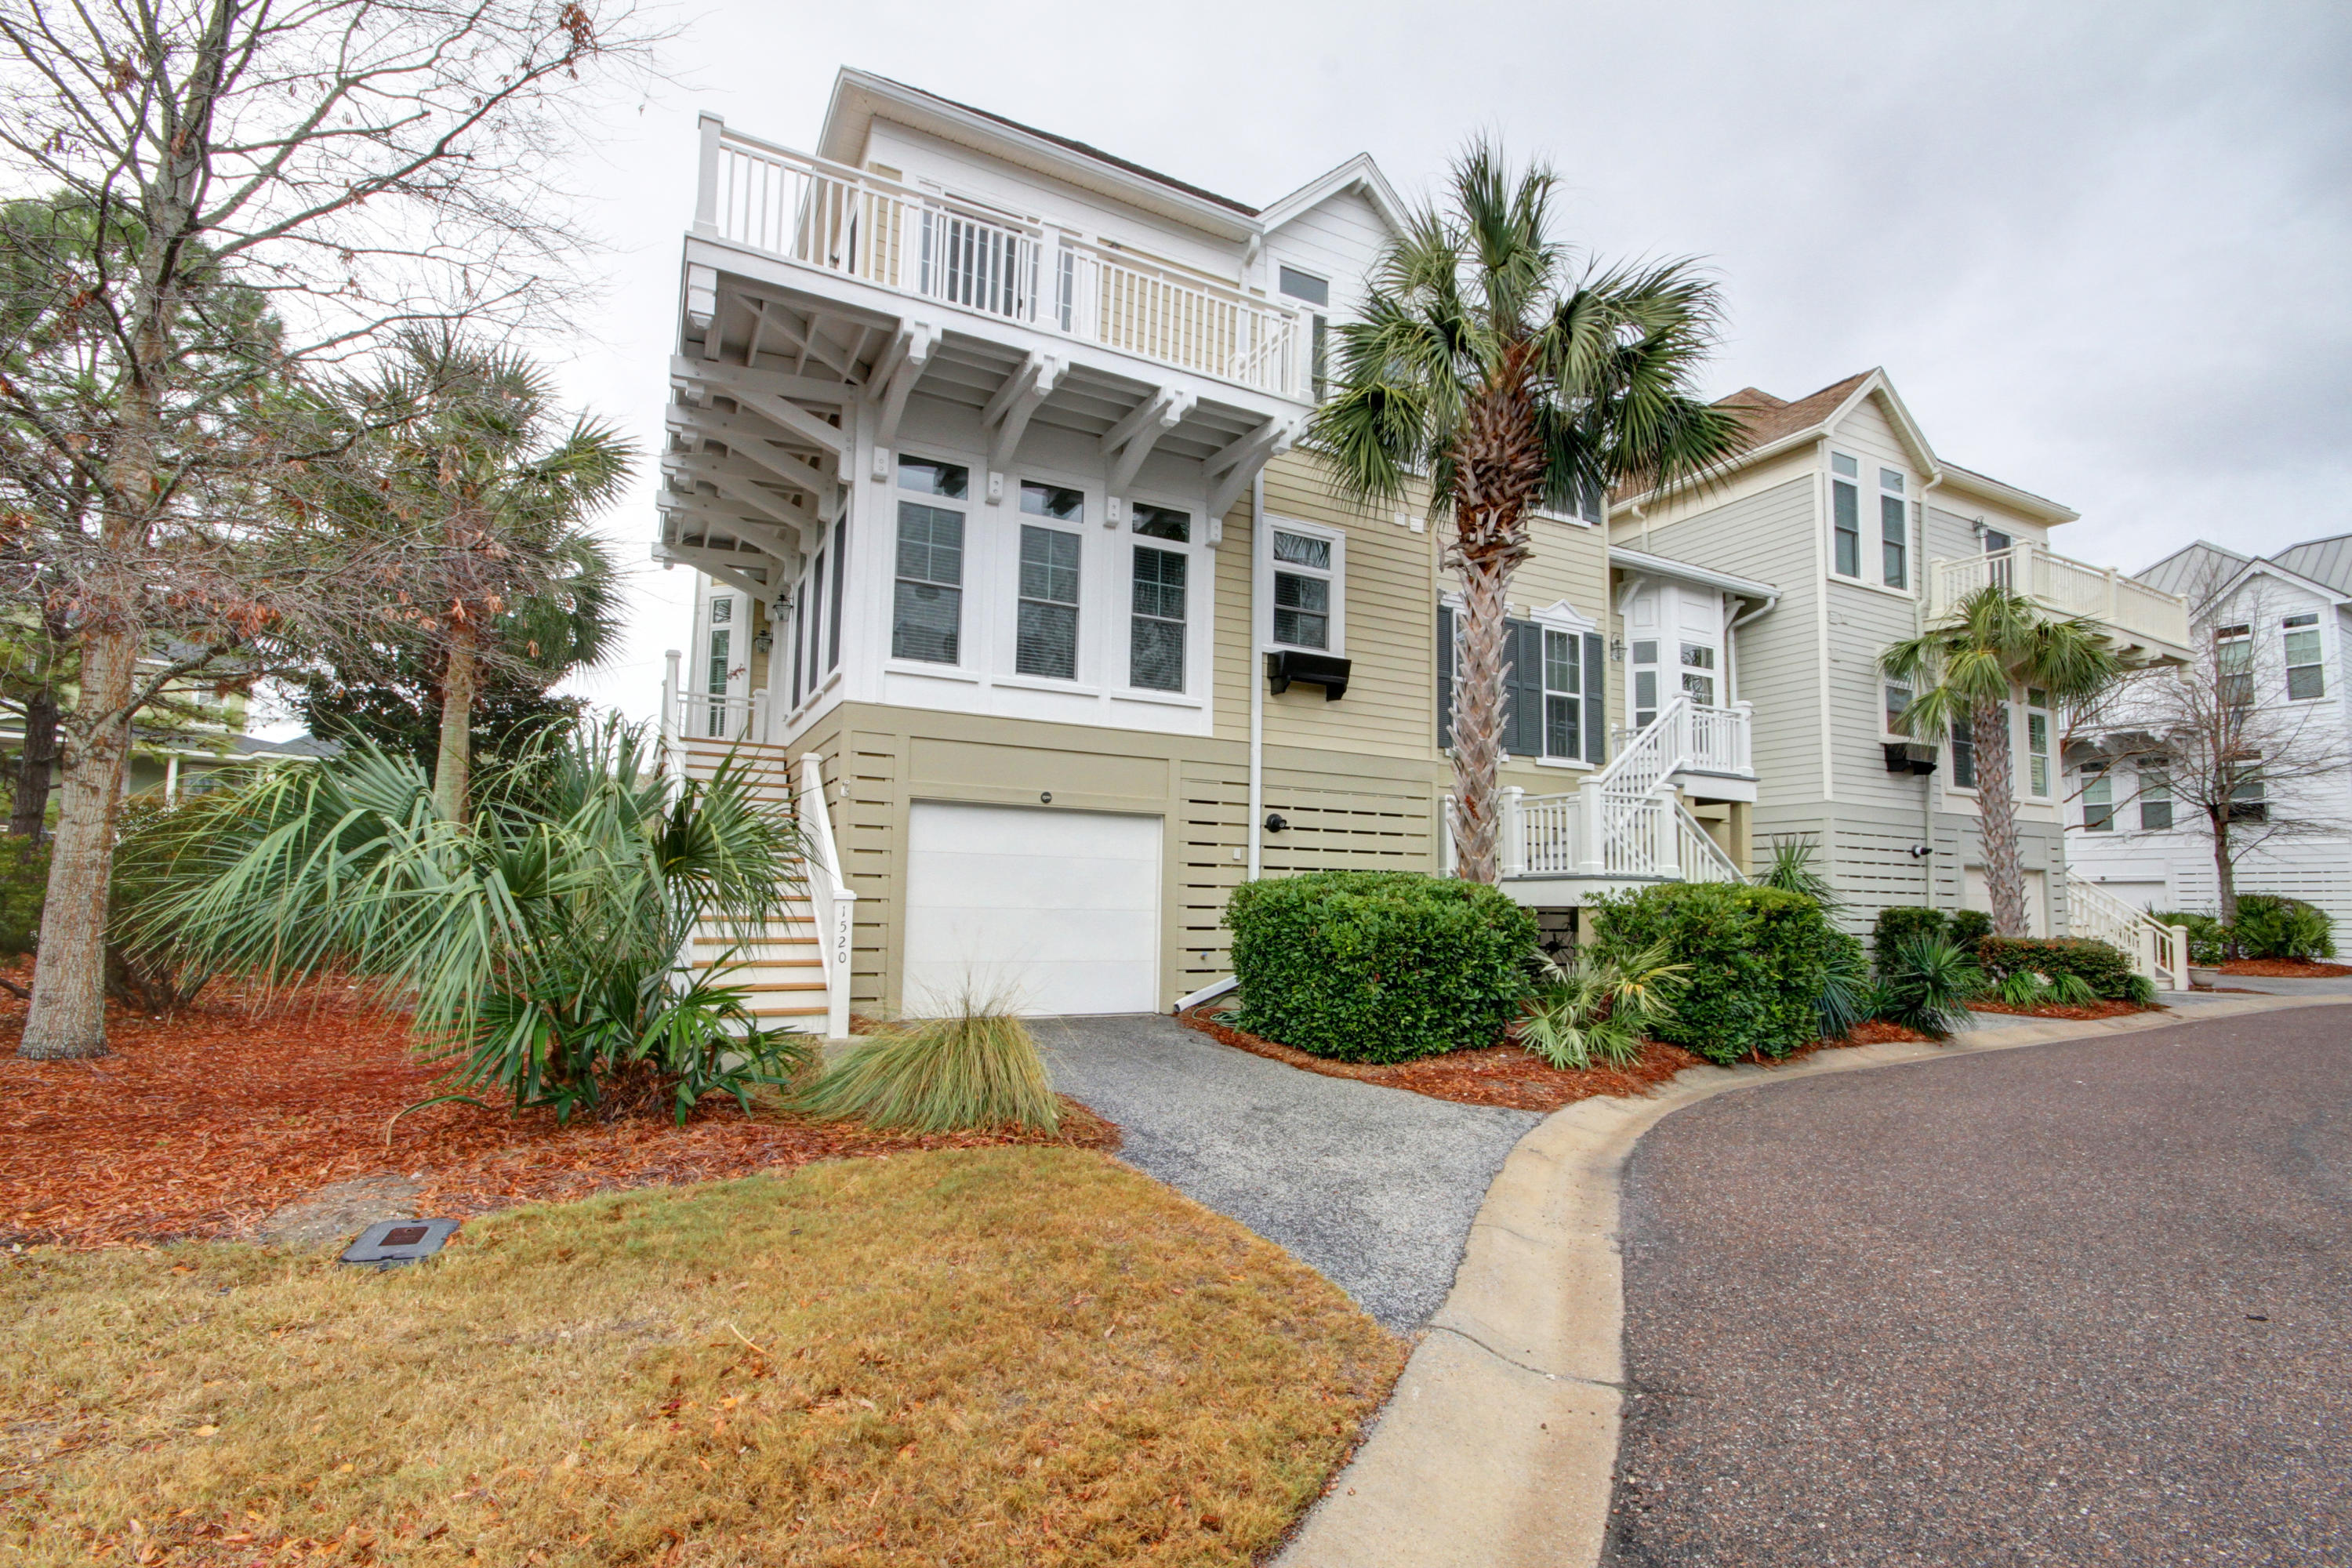 Home for sale 1520 Sea Palms Crescent, Seaside Farms, Mt. Pleasant, SC